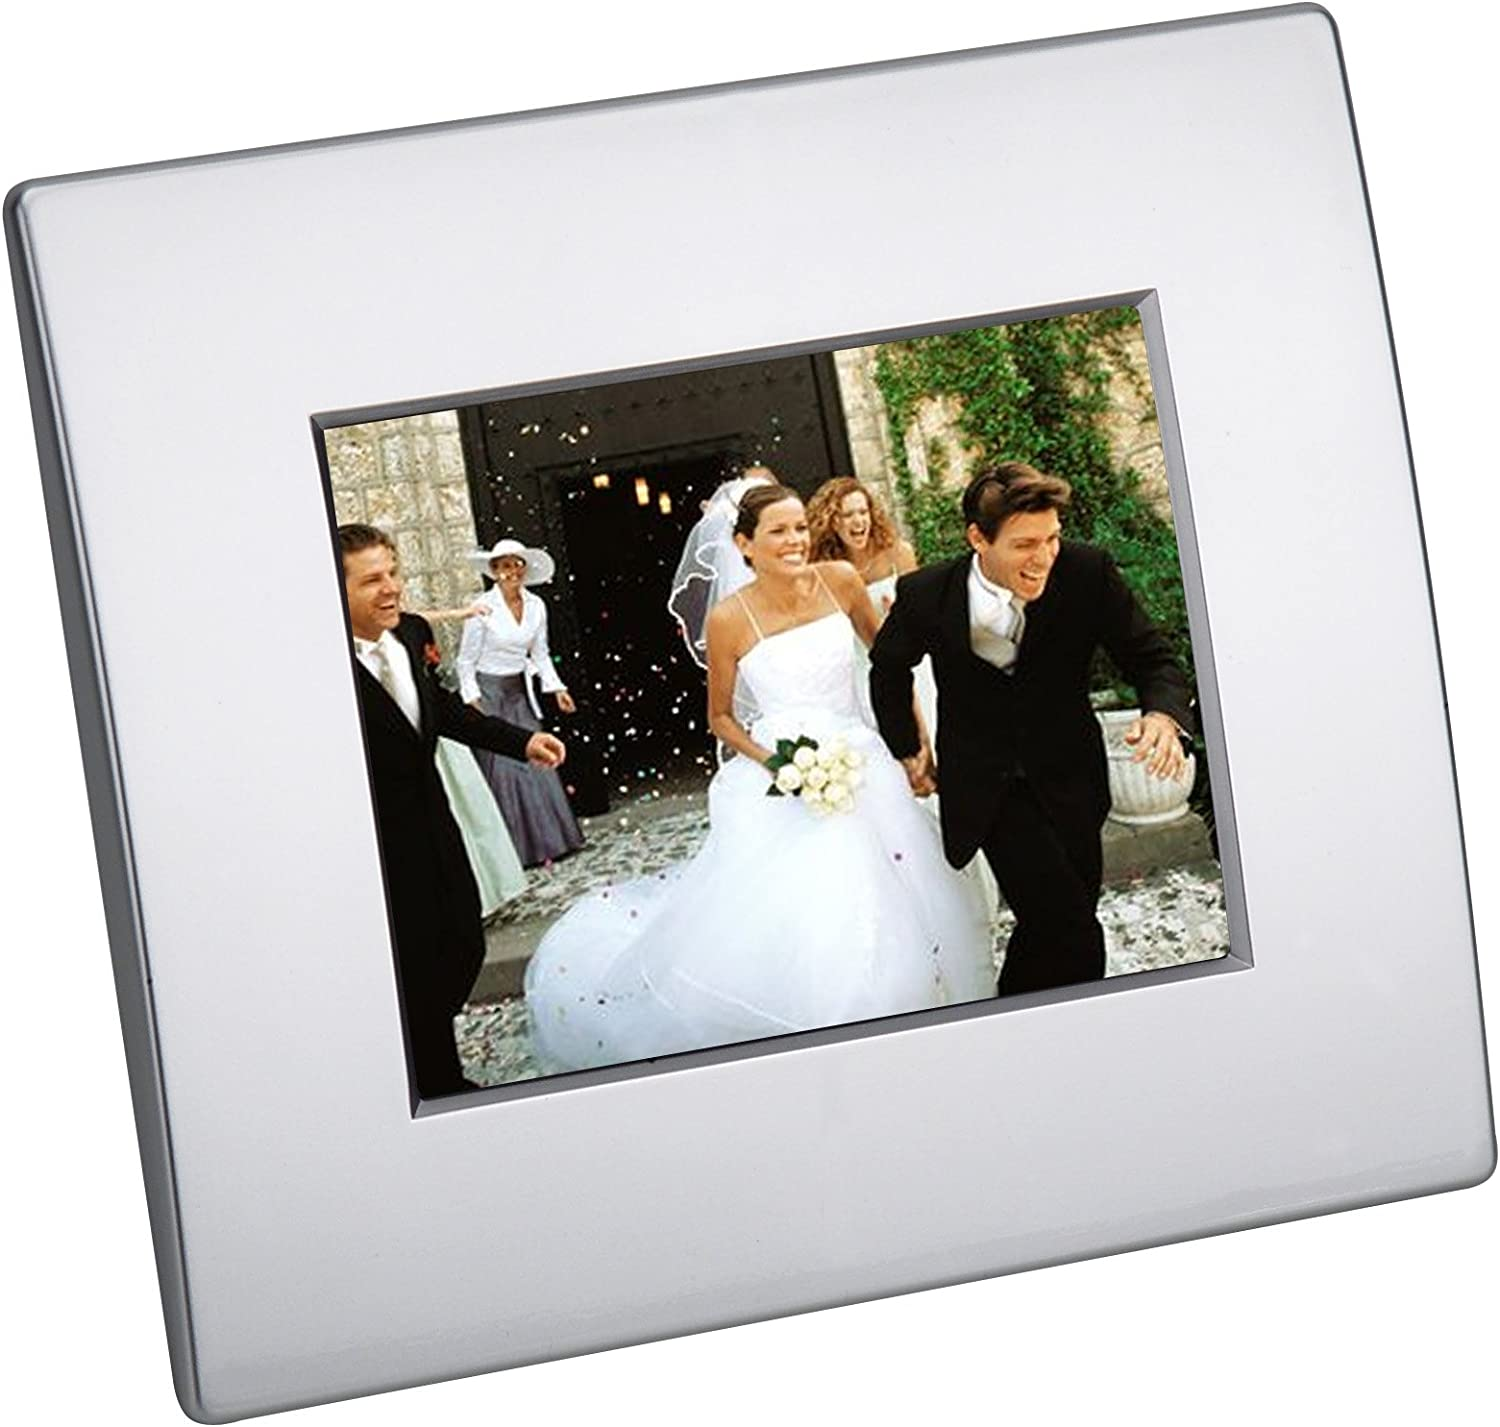 Westinghouse 5.6-Inch LCD Digital Photo Frame